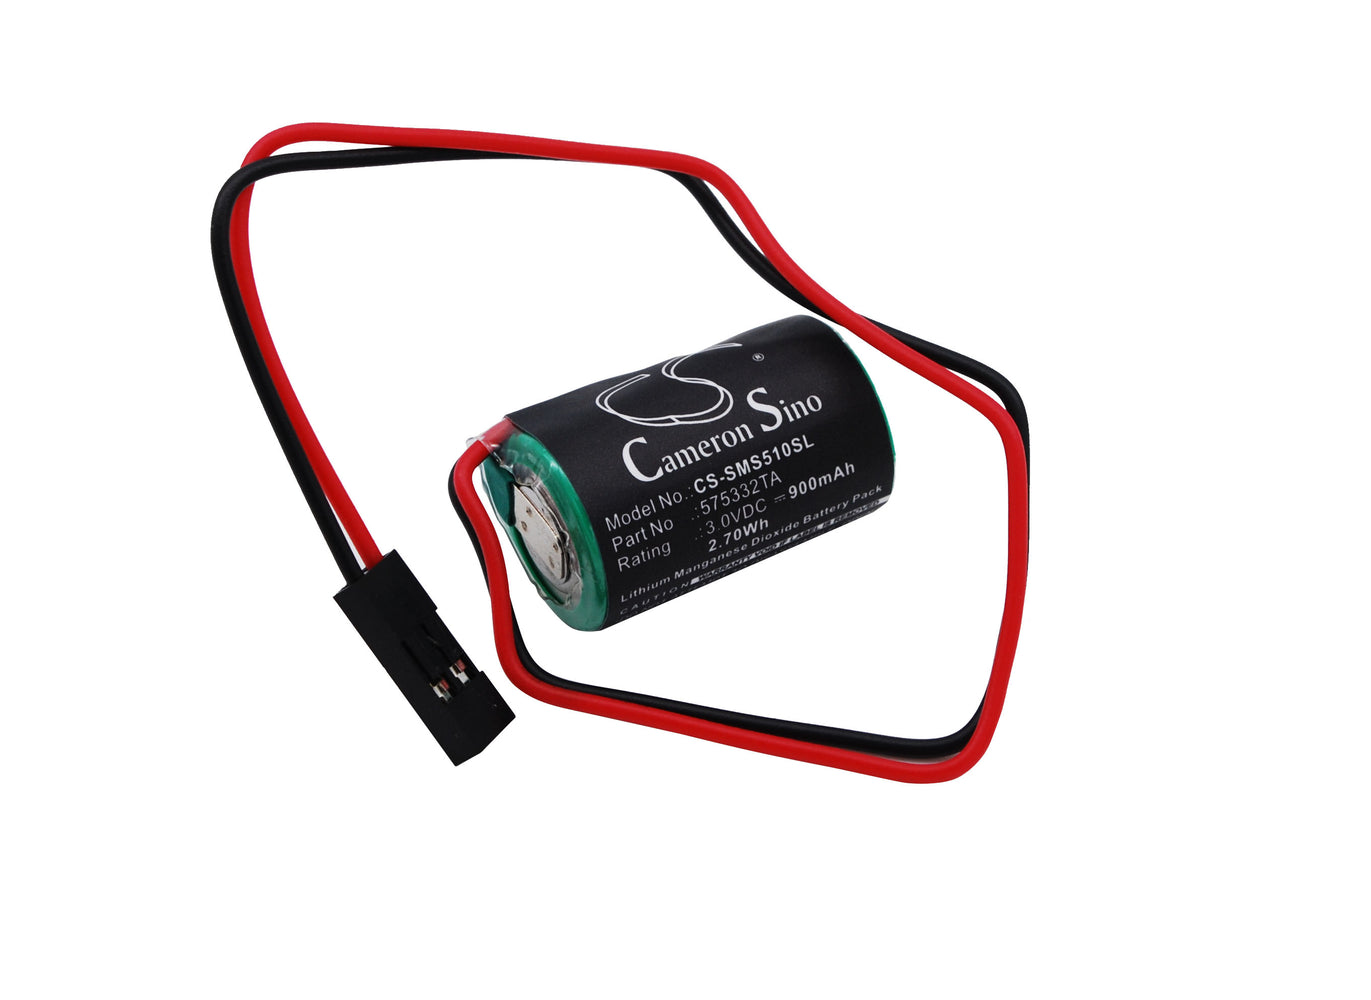 CS-SMS510SL Cameron Sino Battery